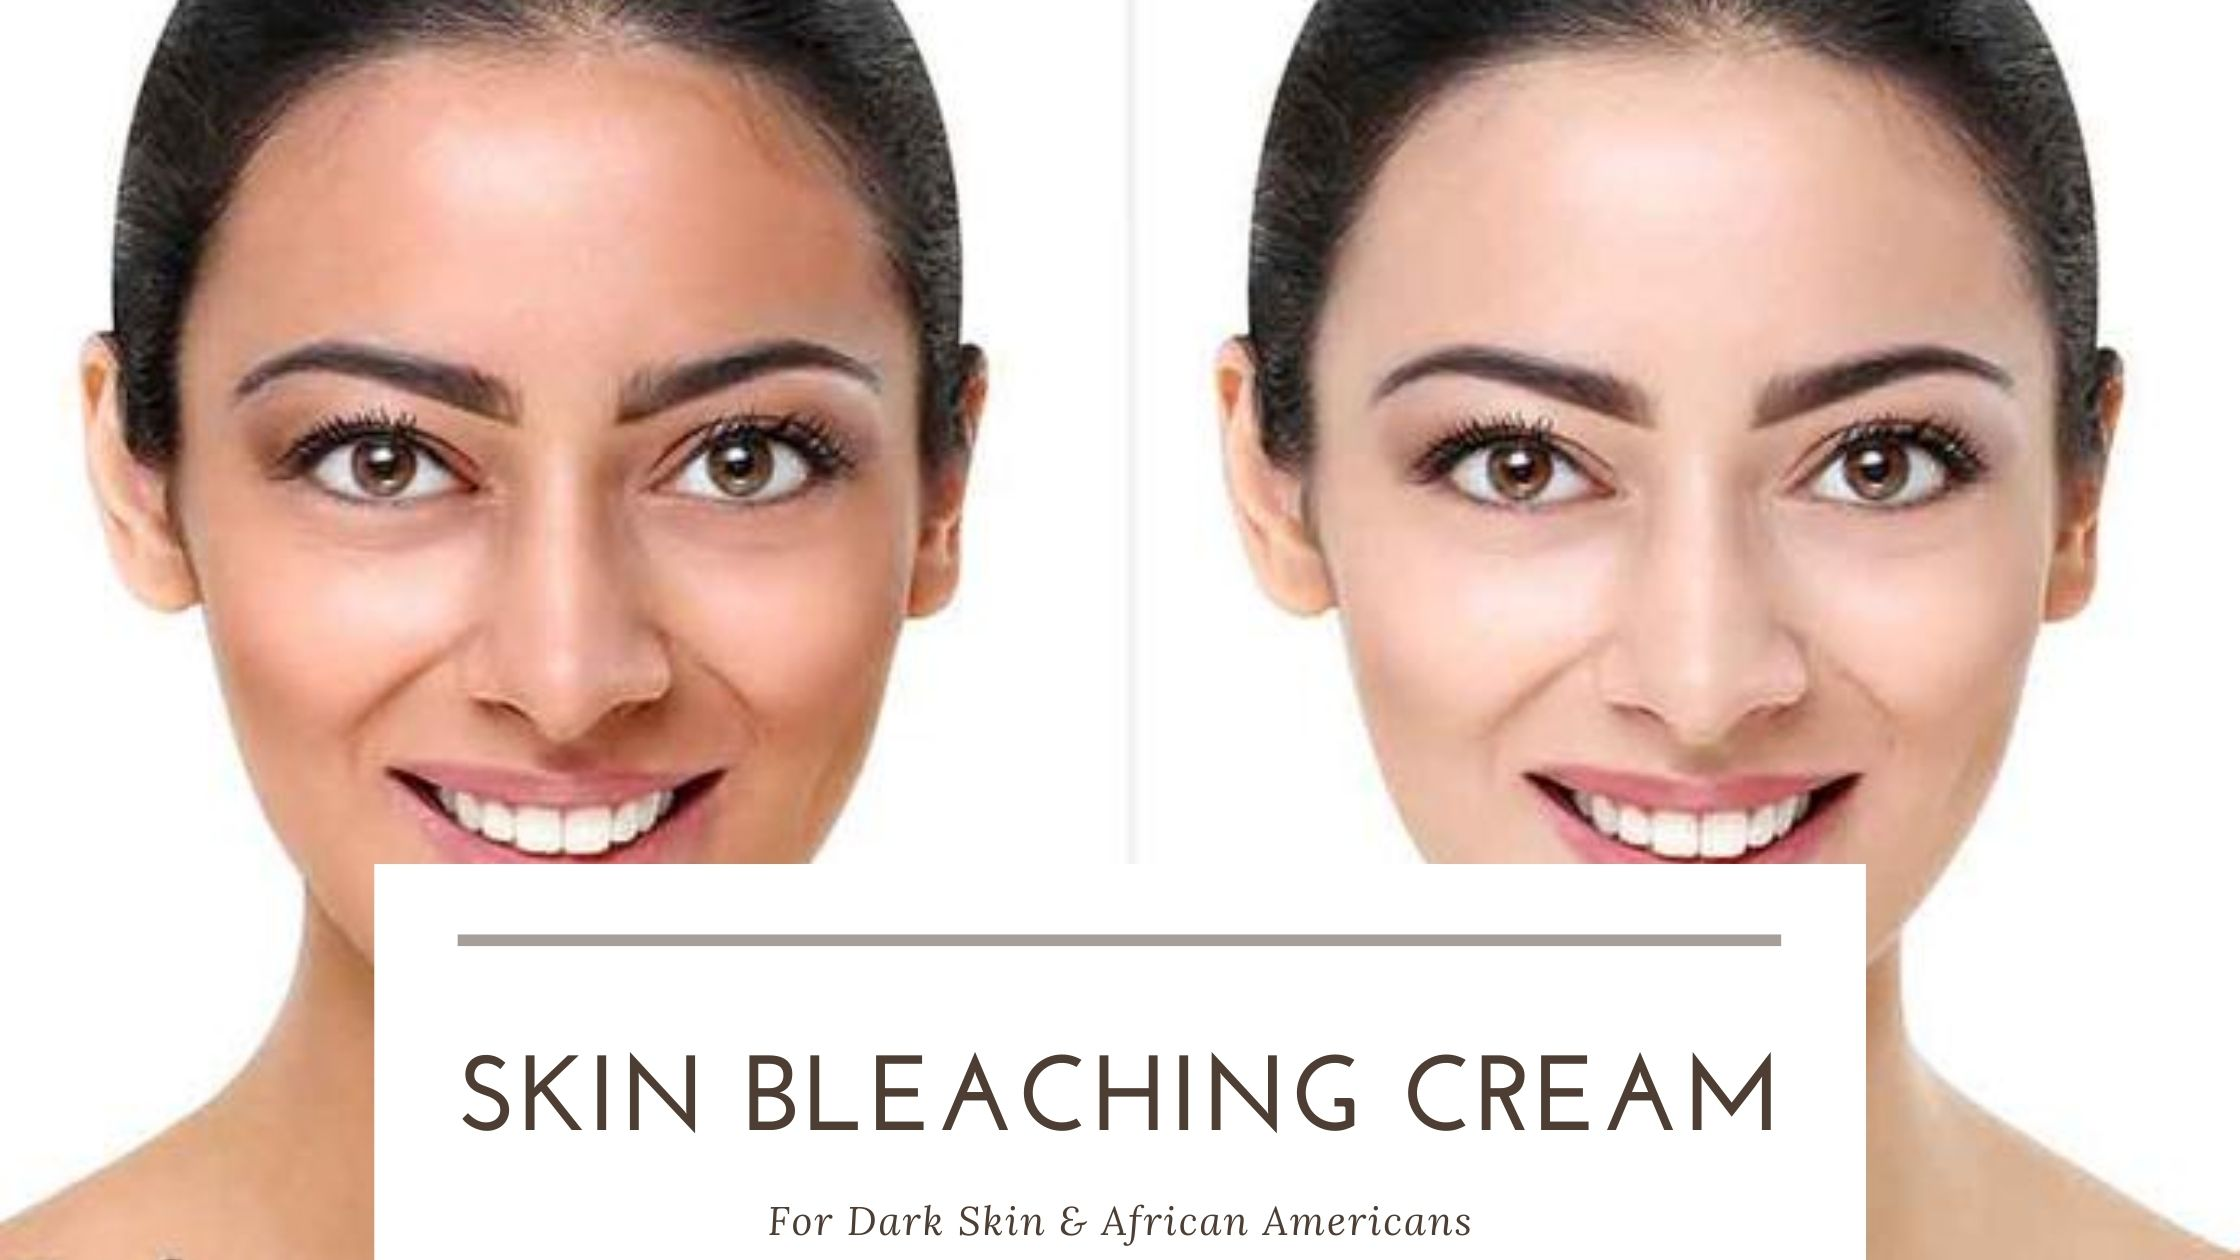 5 Best Skin Bleaching Cream for Dark Skin and African Americans